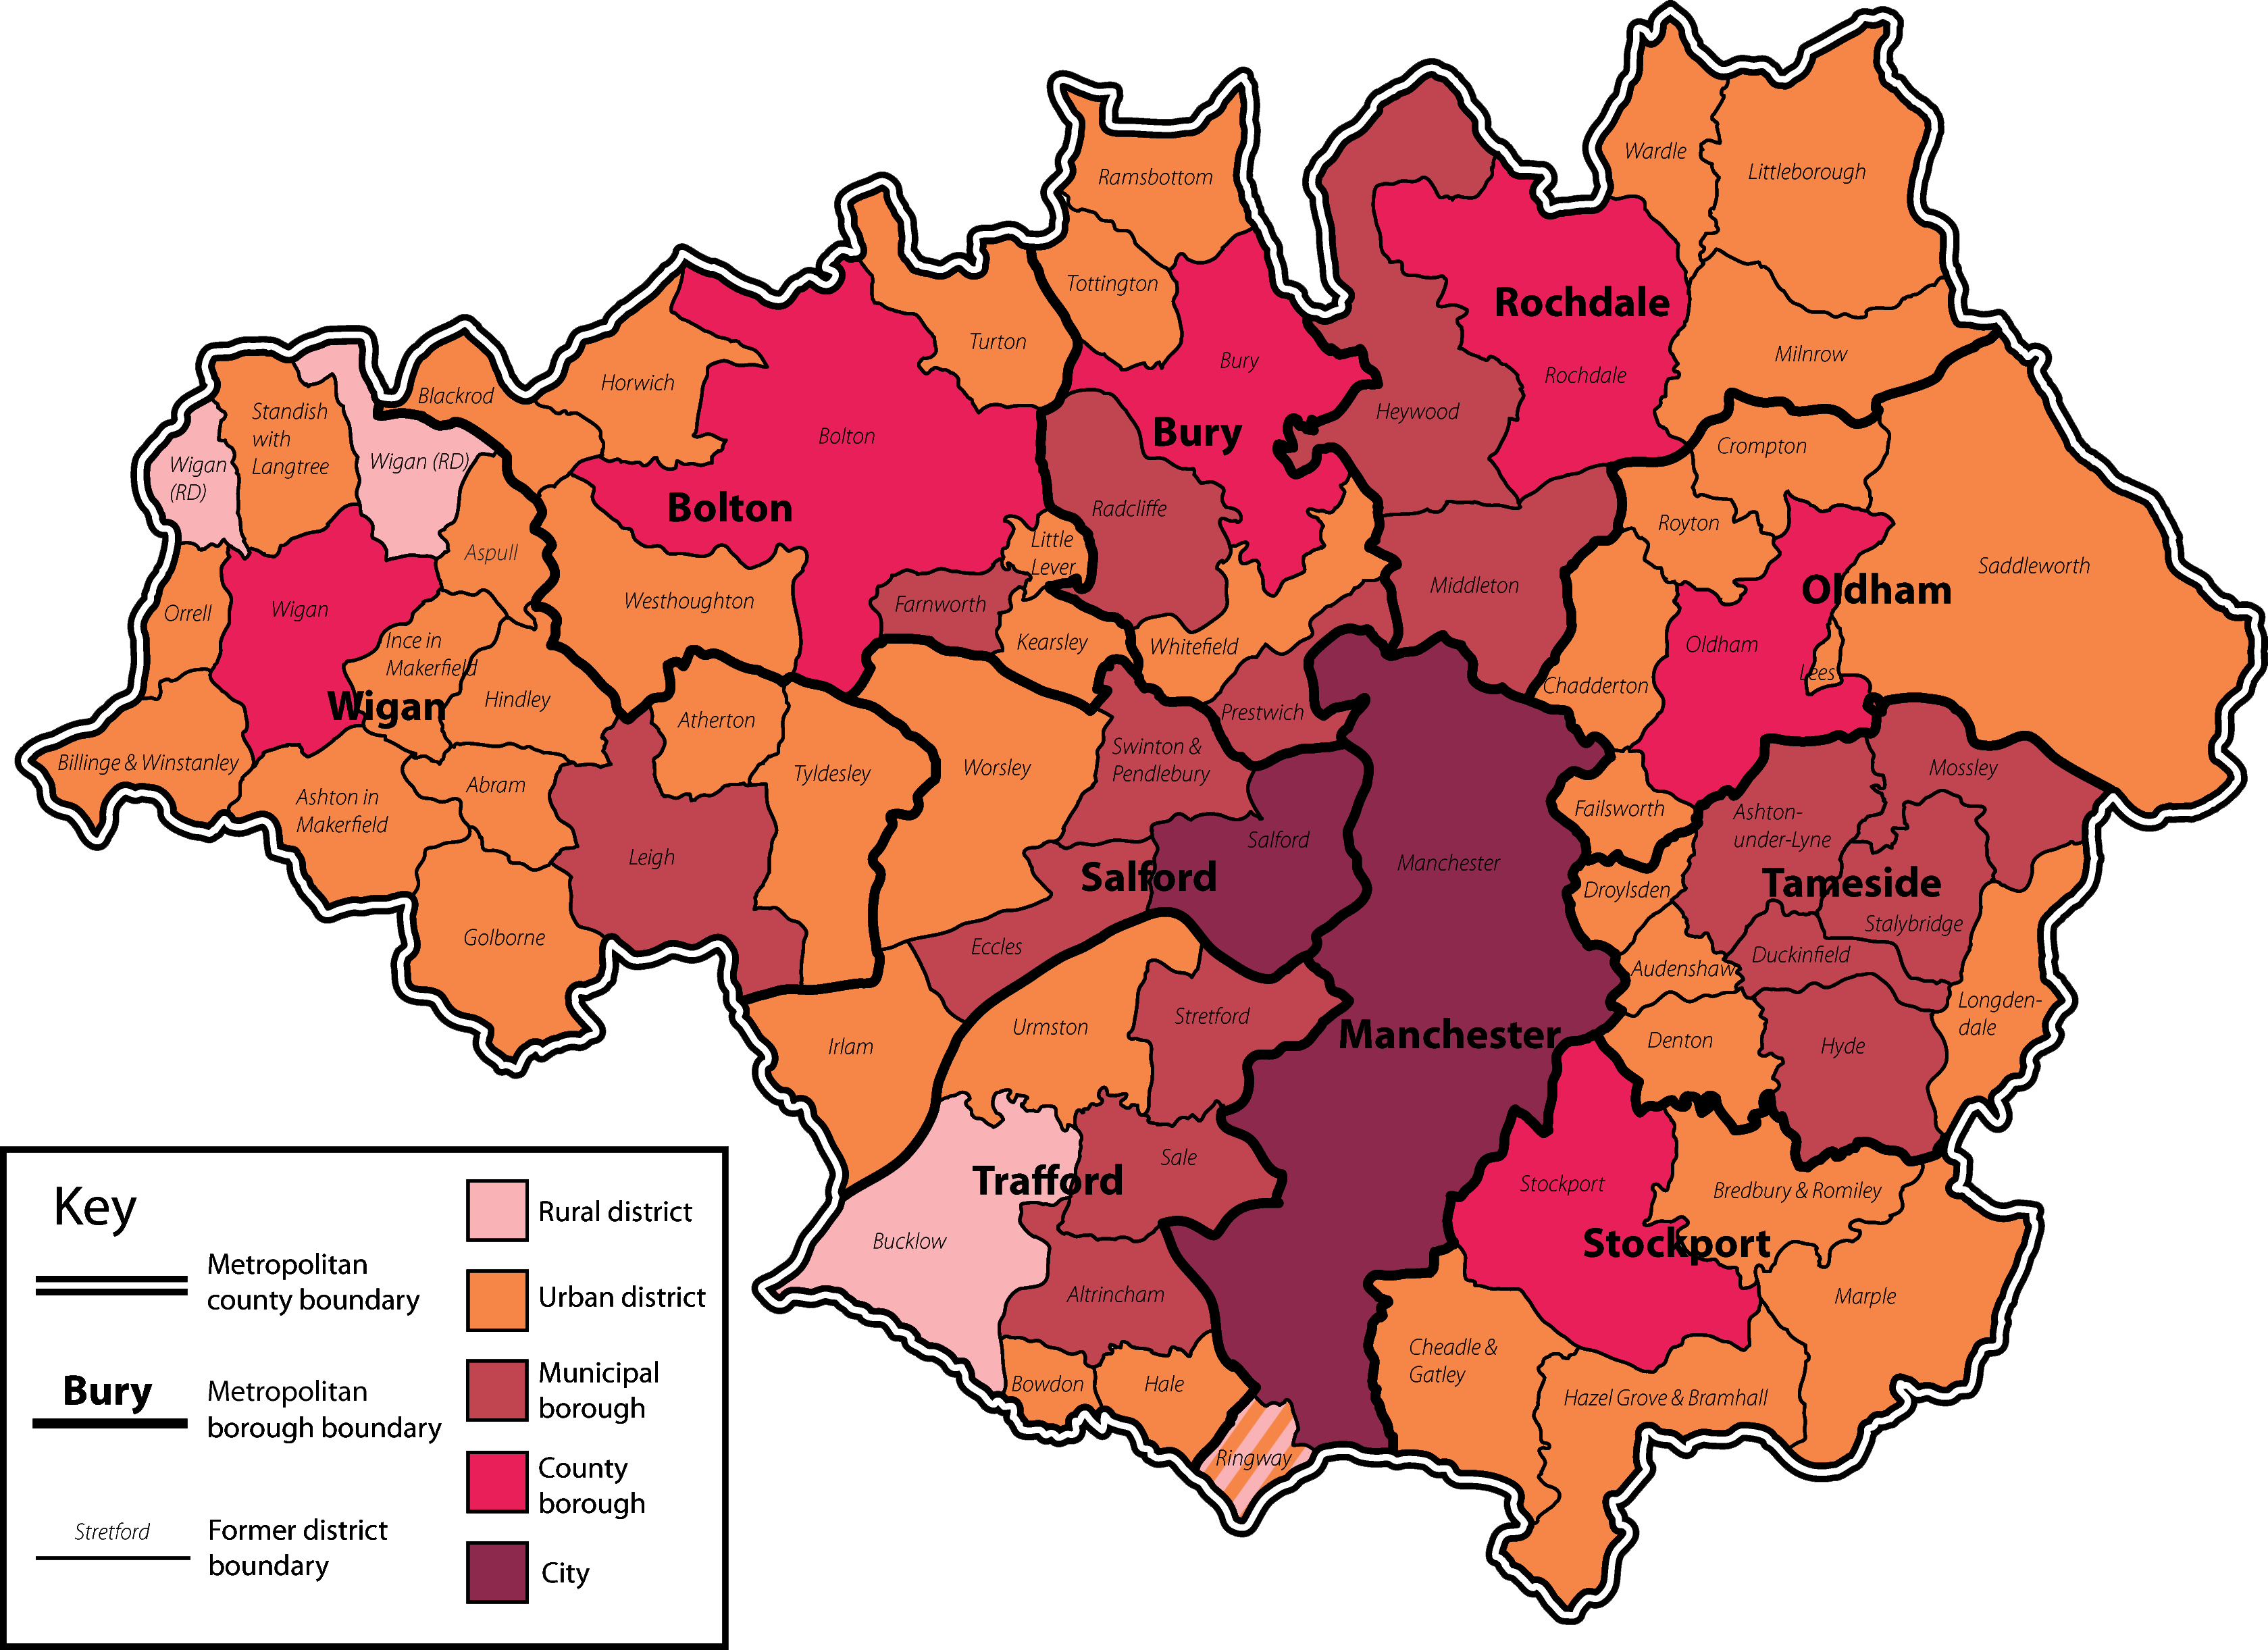 FileGreater Manchester Countypng  Wikimedia Commons